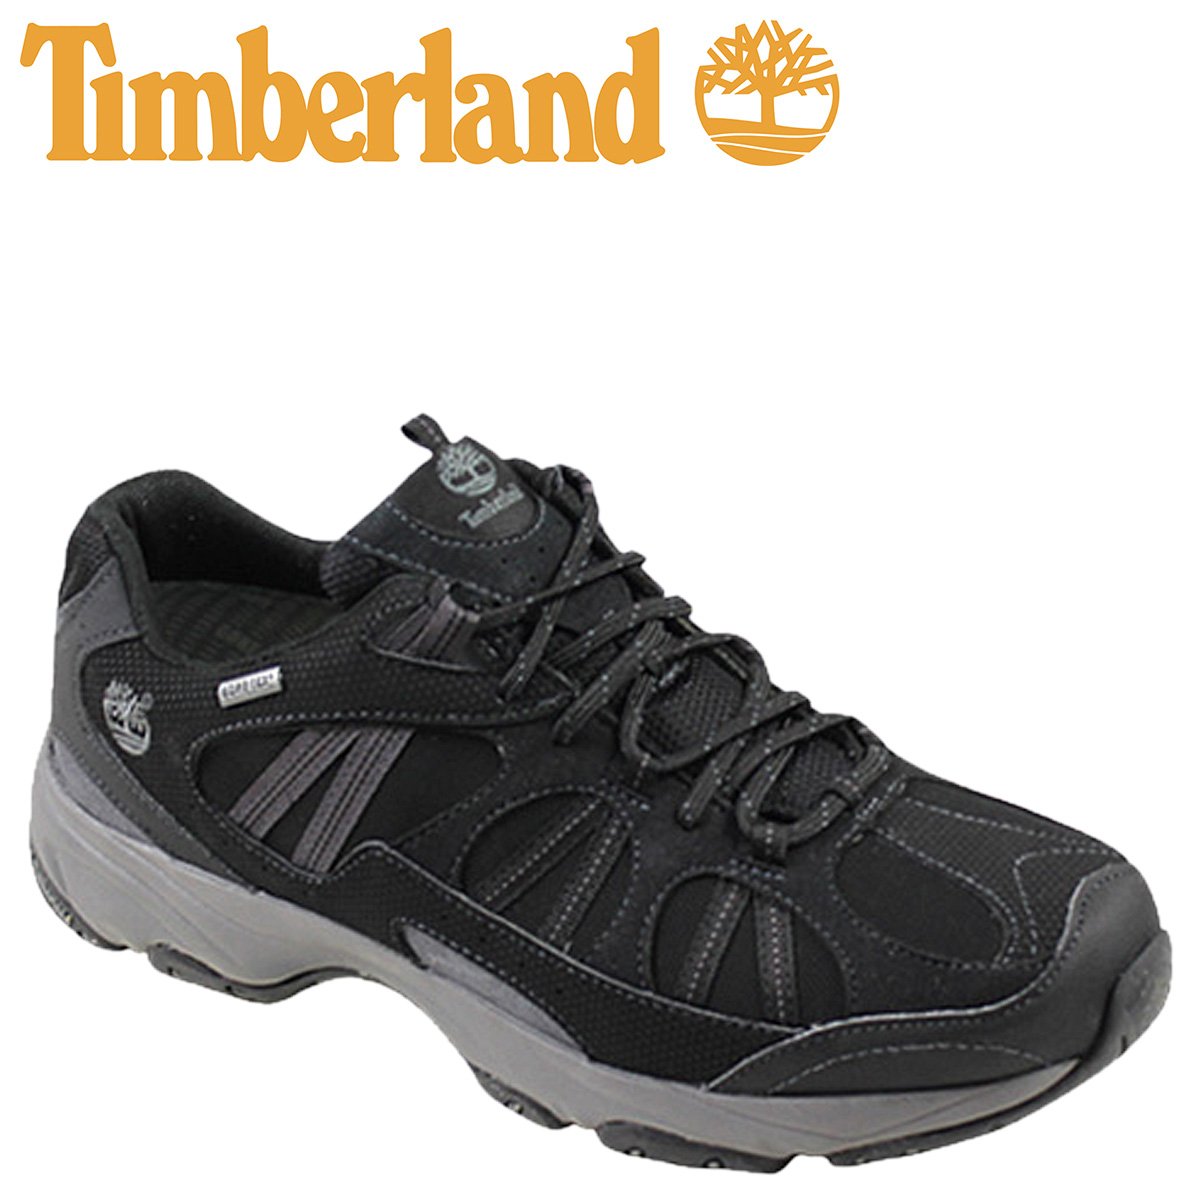 Low Light Tex Black Gore Timberland Sneakers Men Translite Trance 94106 SpUqVMGz